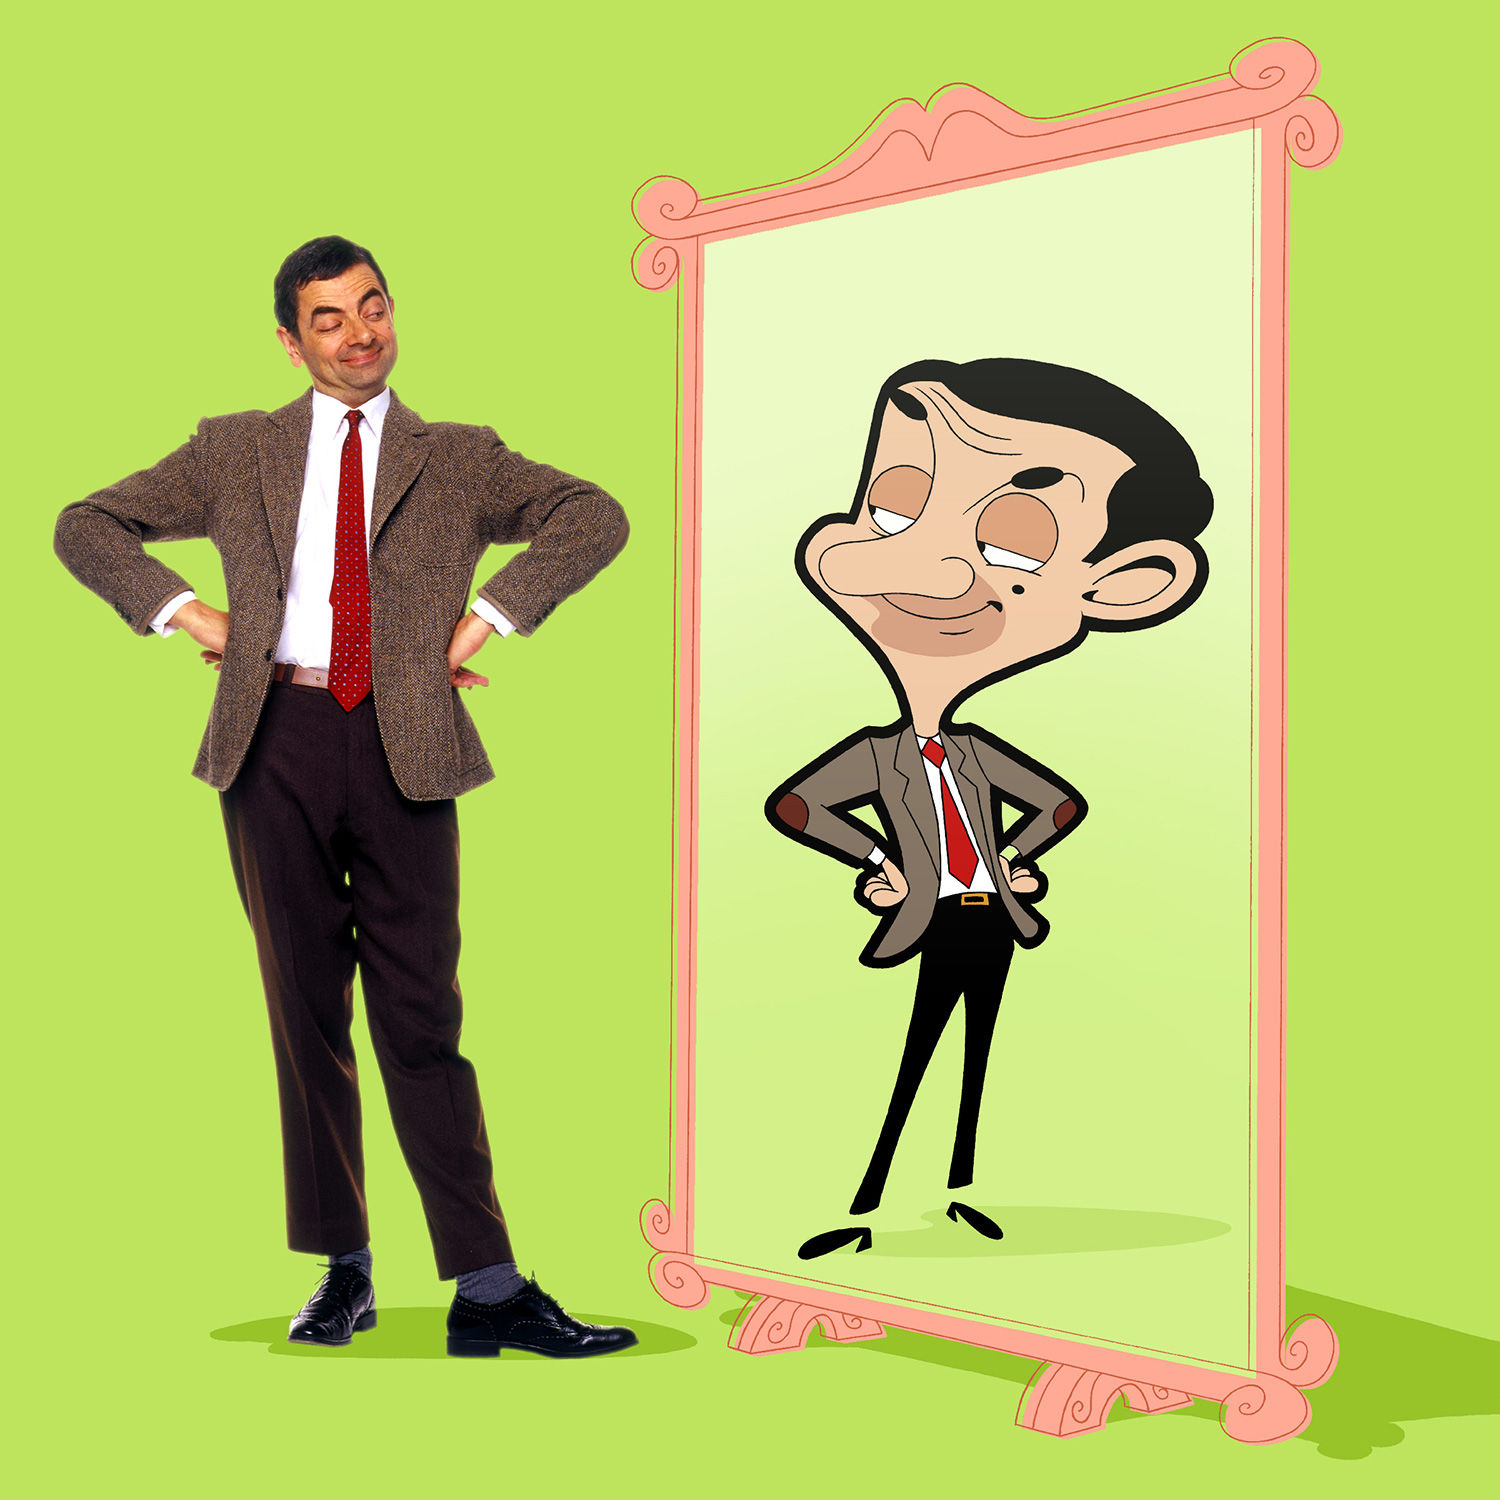 Mr Bean An Animated Facebook Livestream Of Mr Bean Uses Adobe Character